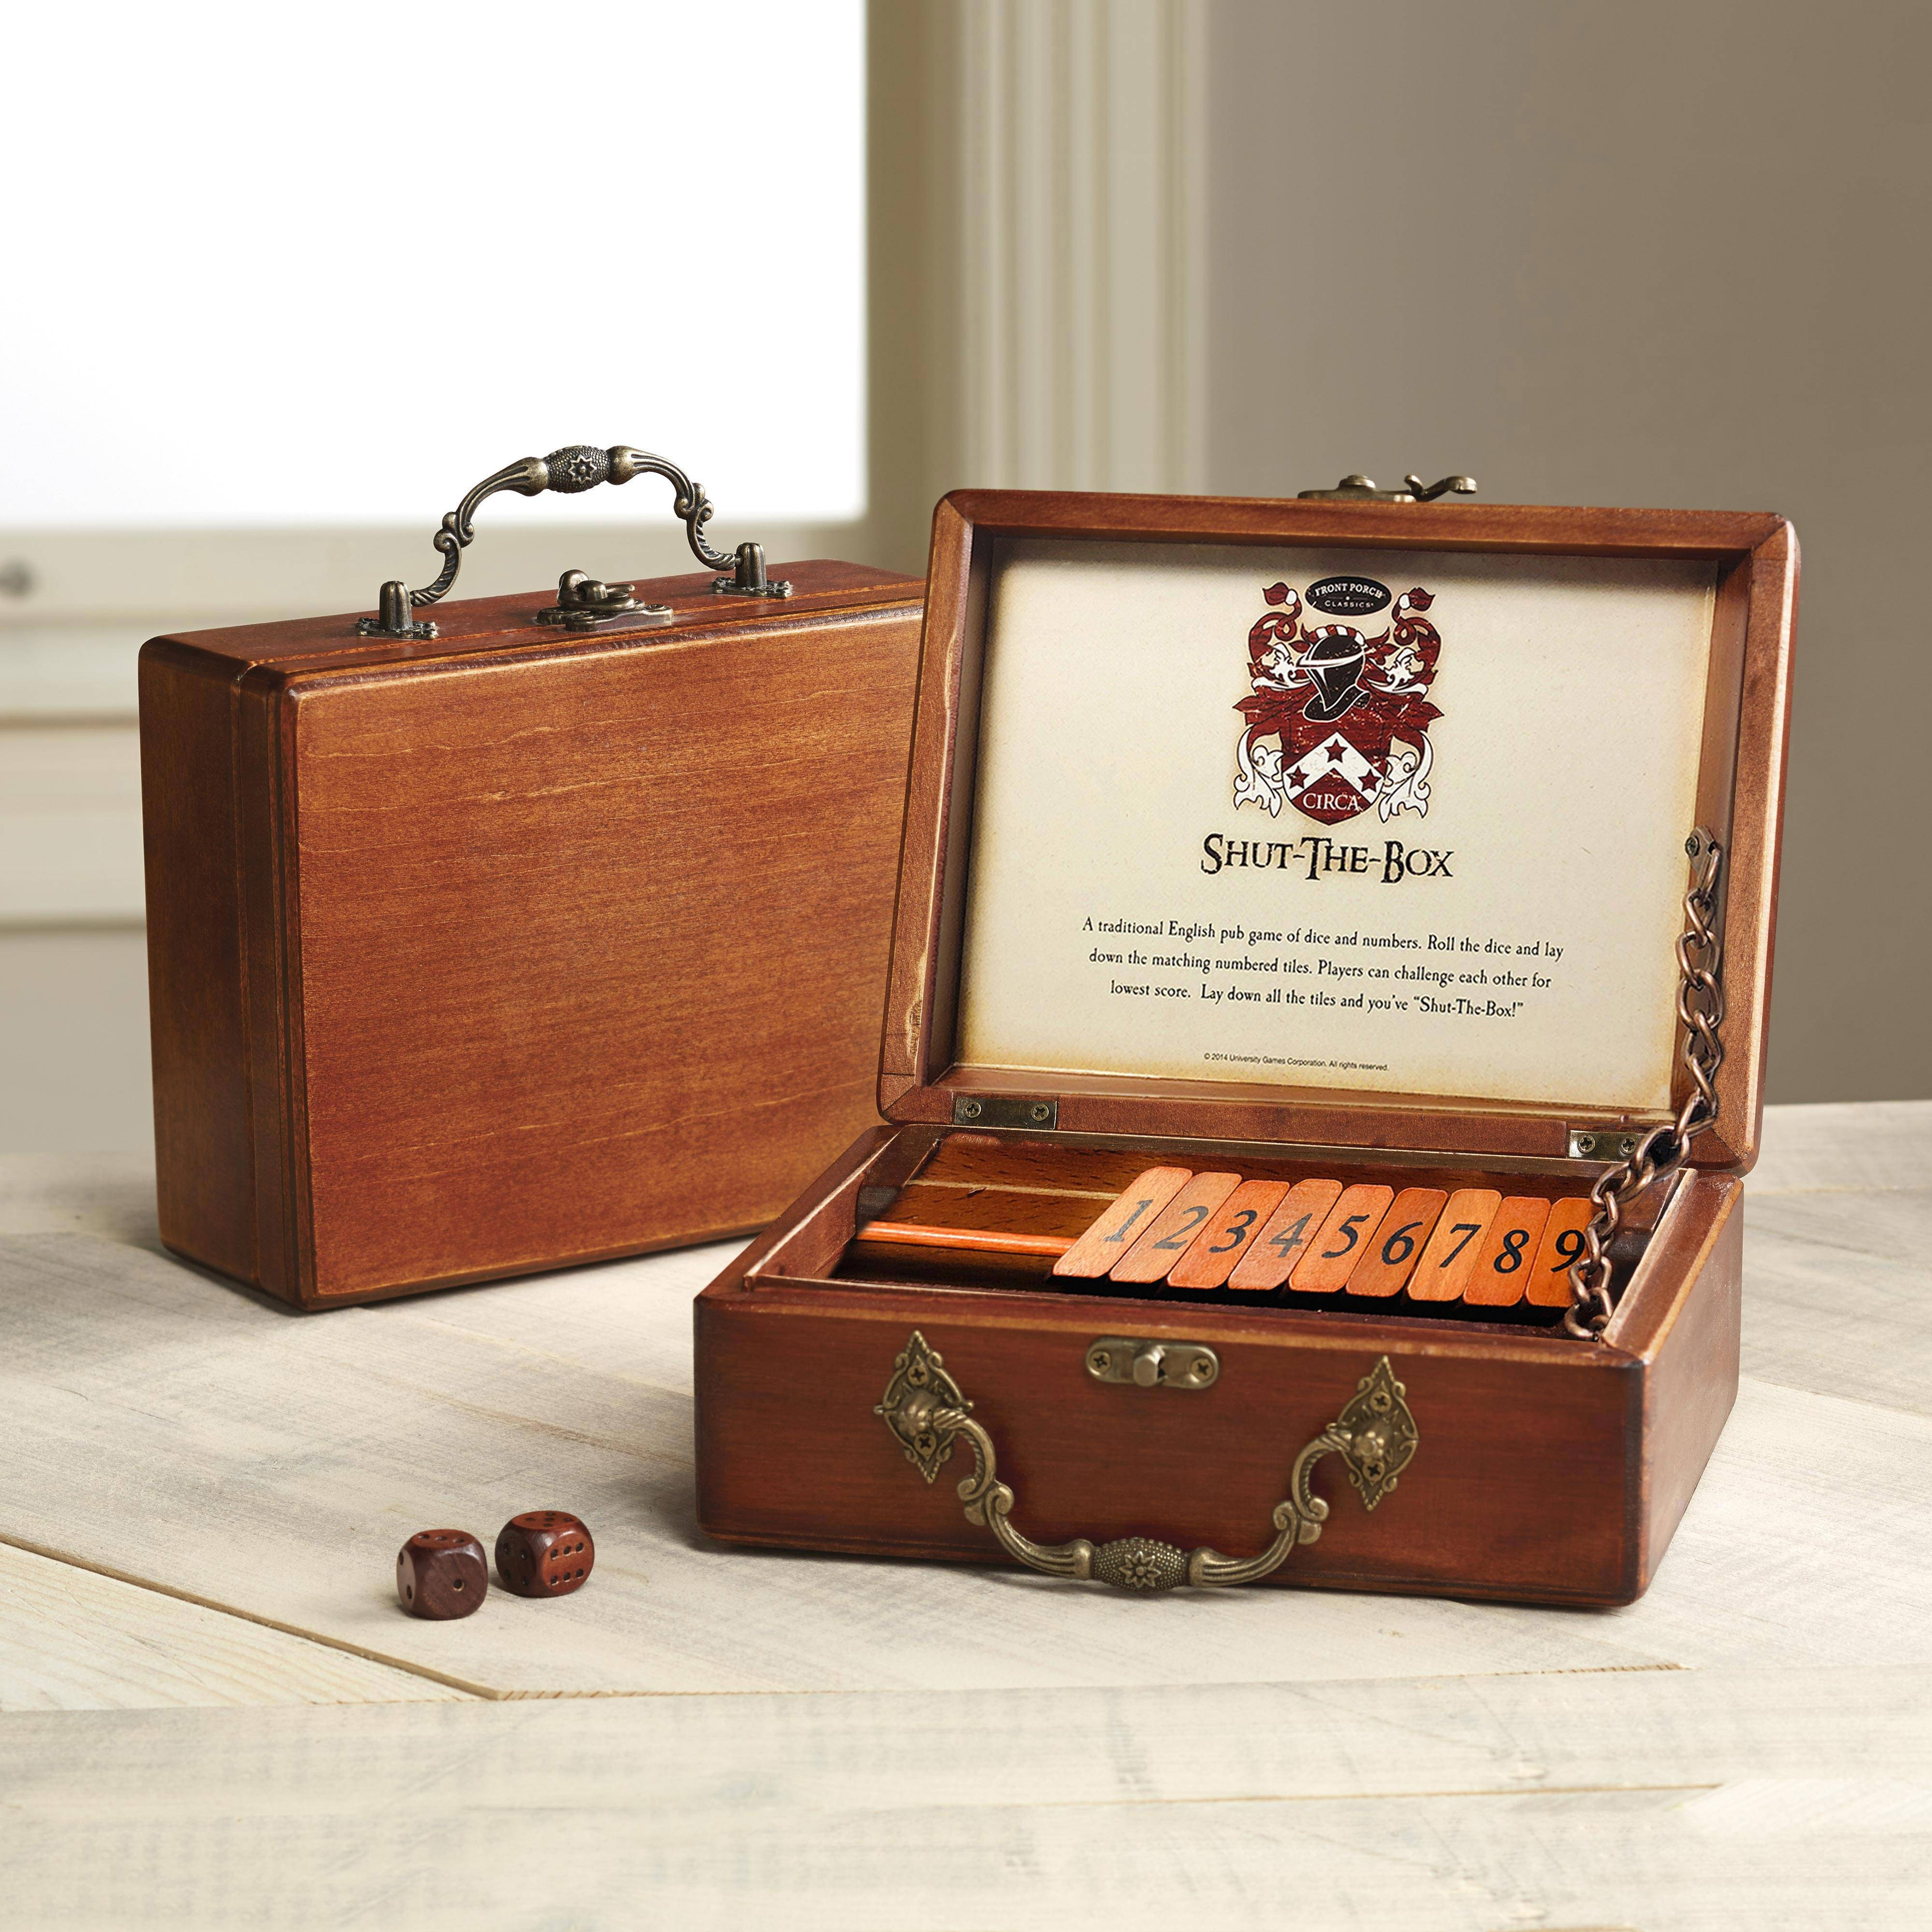 card game set wood handcrafted india full house place to call home box set Wood game, u0027Shut The Boxu0027 - Shut the ...